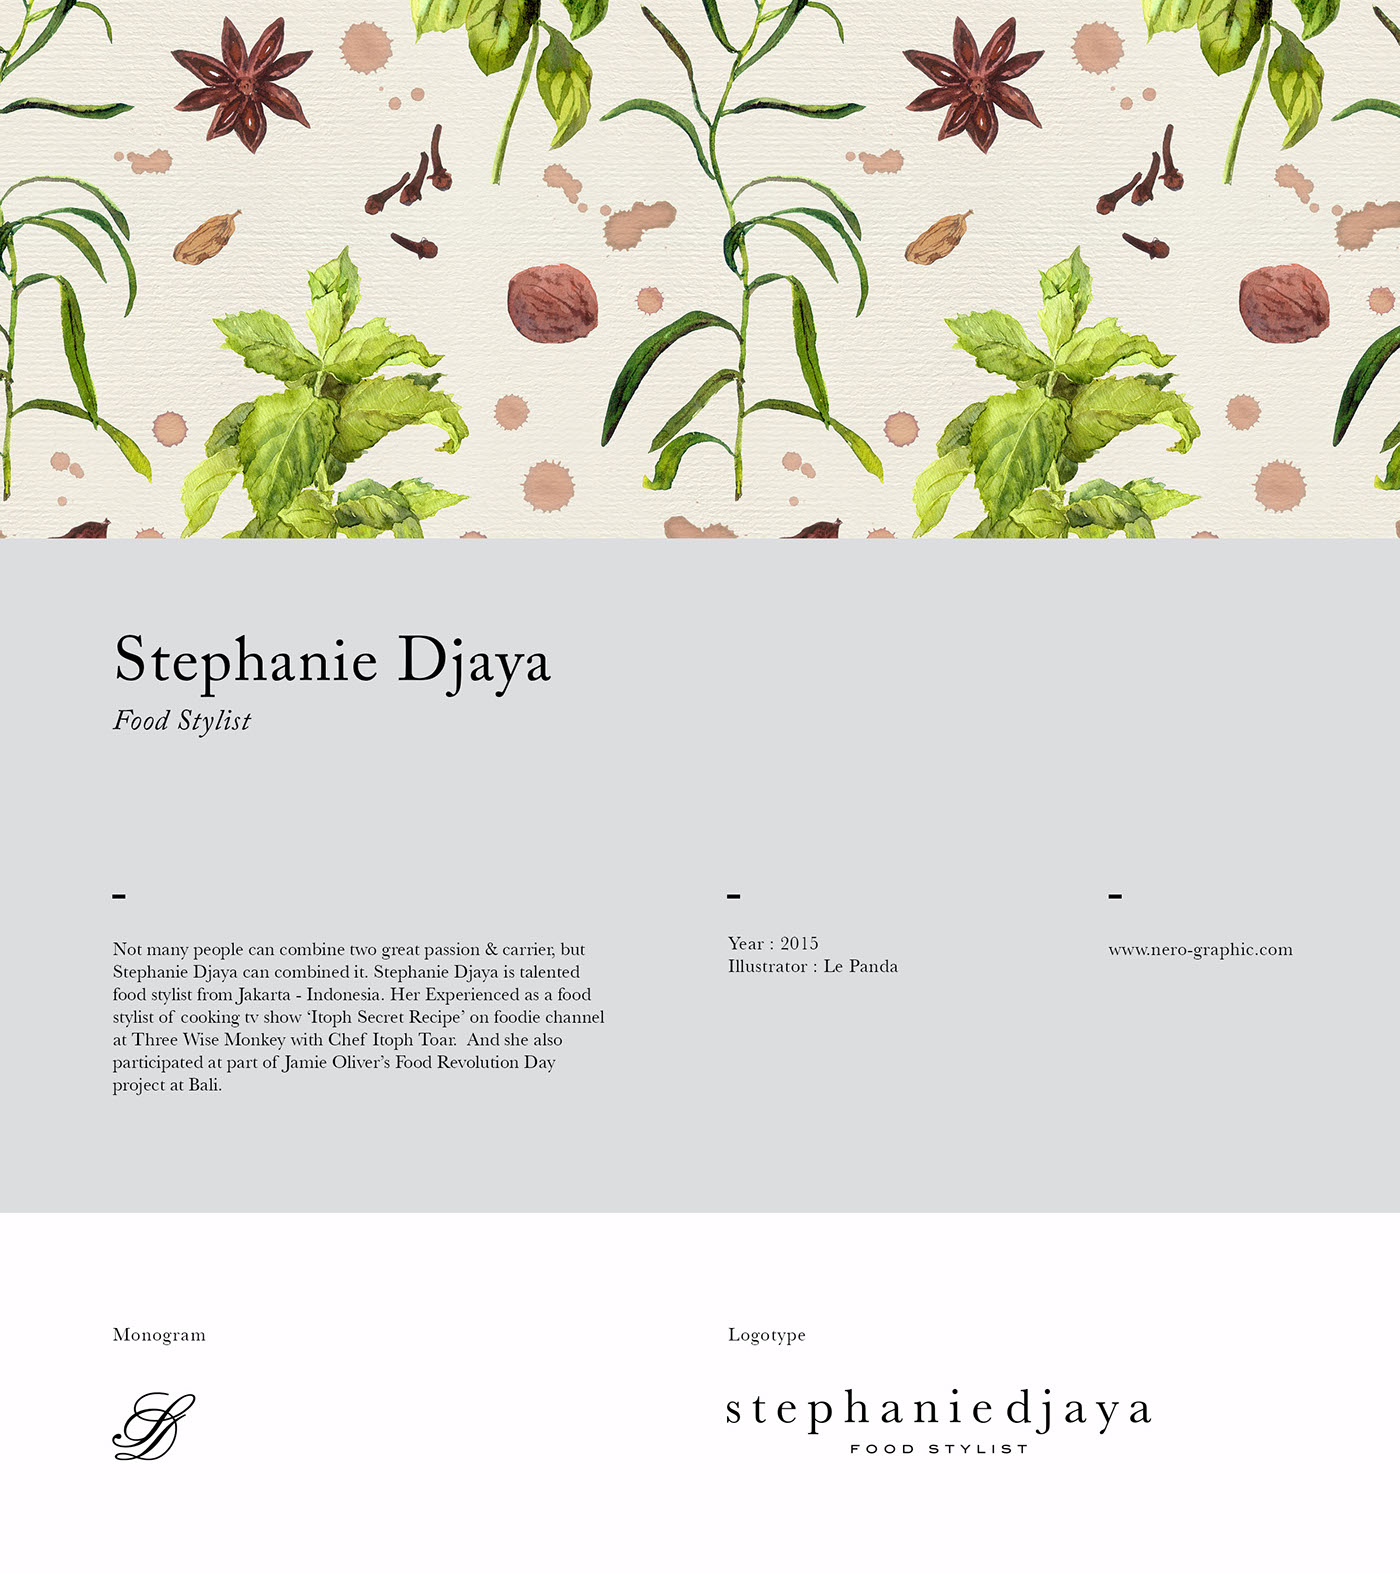 Stephanie djaya food stylist on behance forumfinder Images